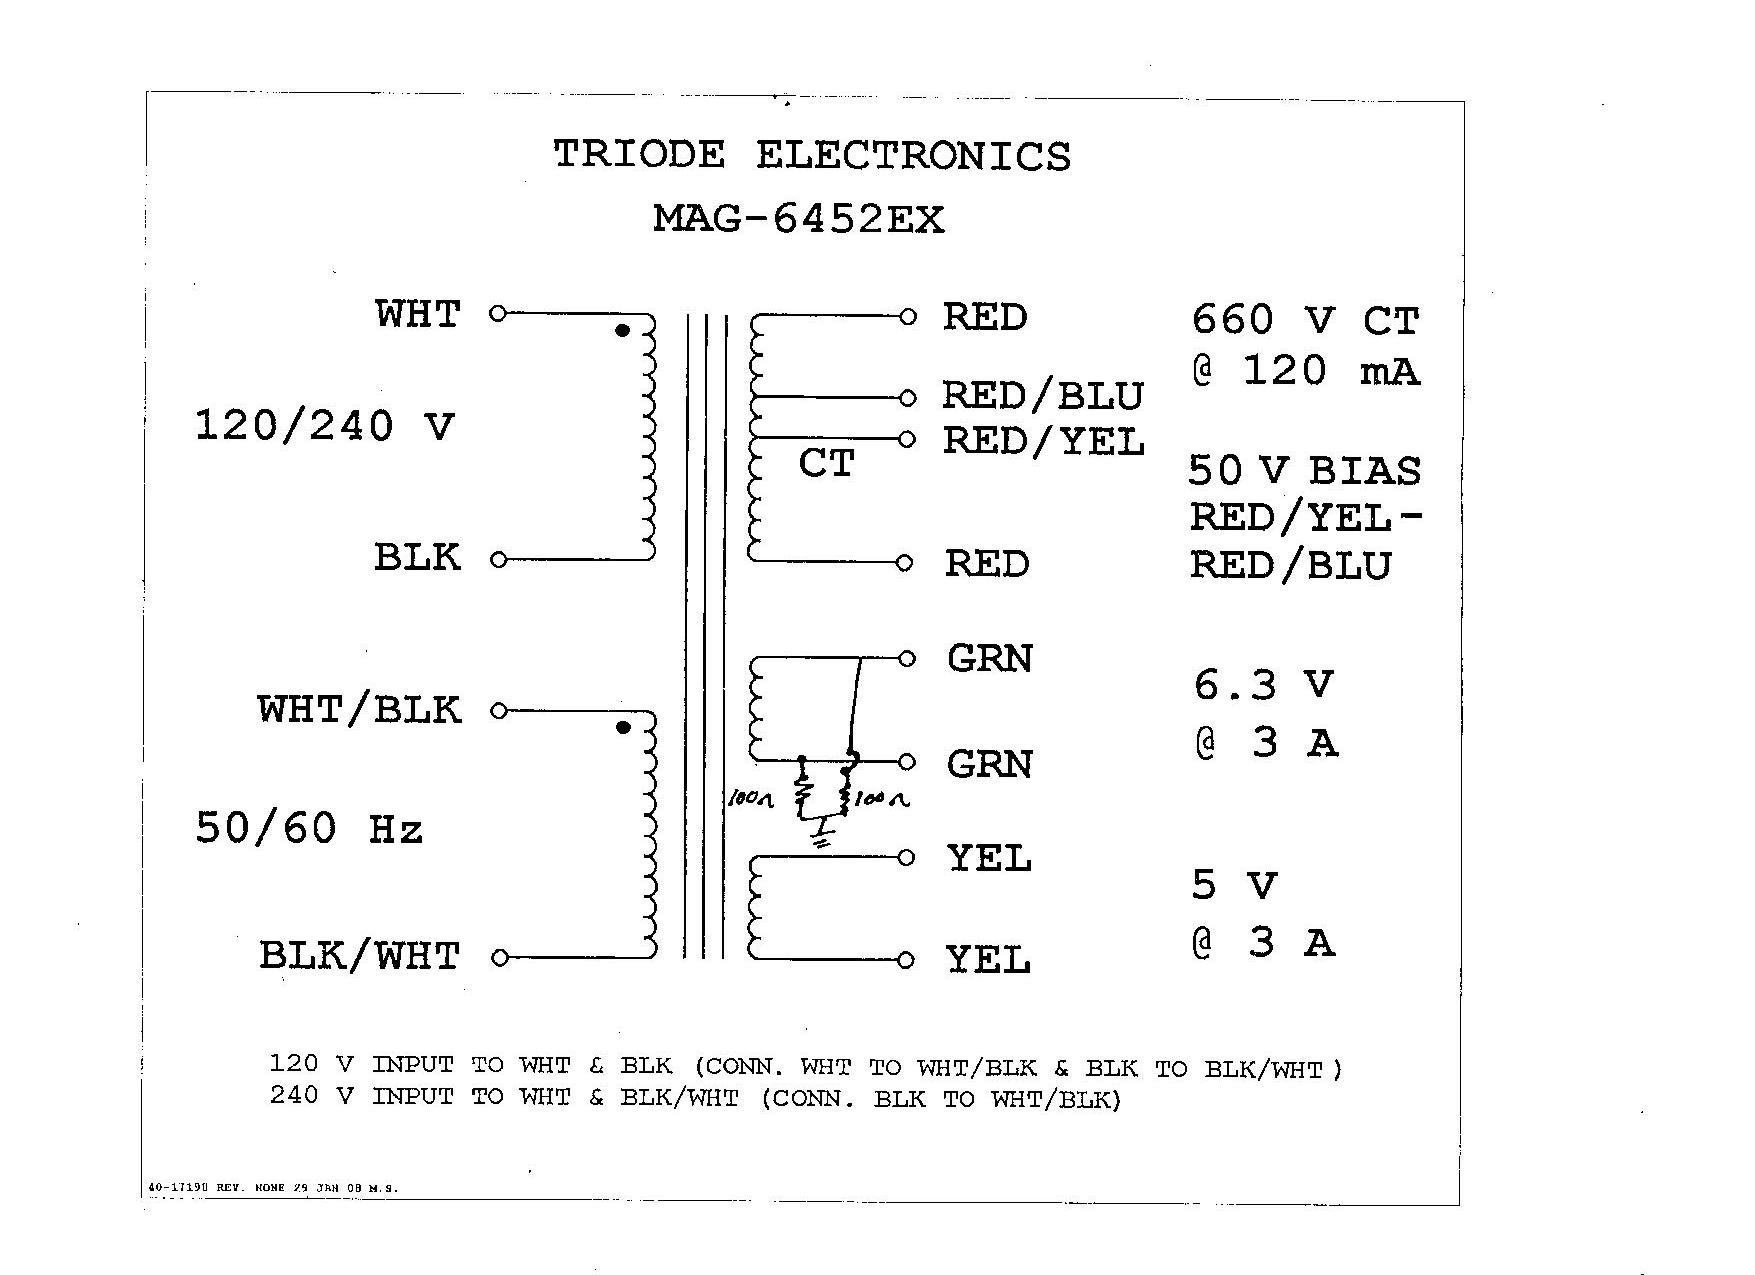 Control Transformer Wiring Diagram - Wiring Diagram Data on